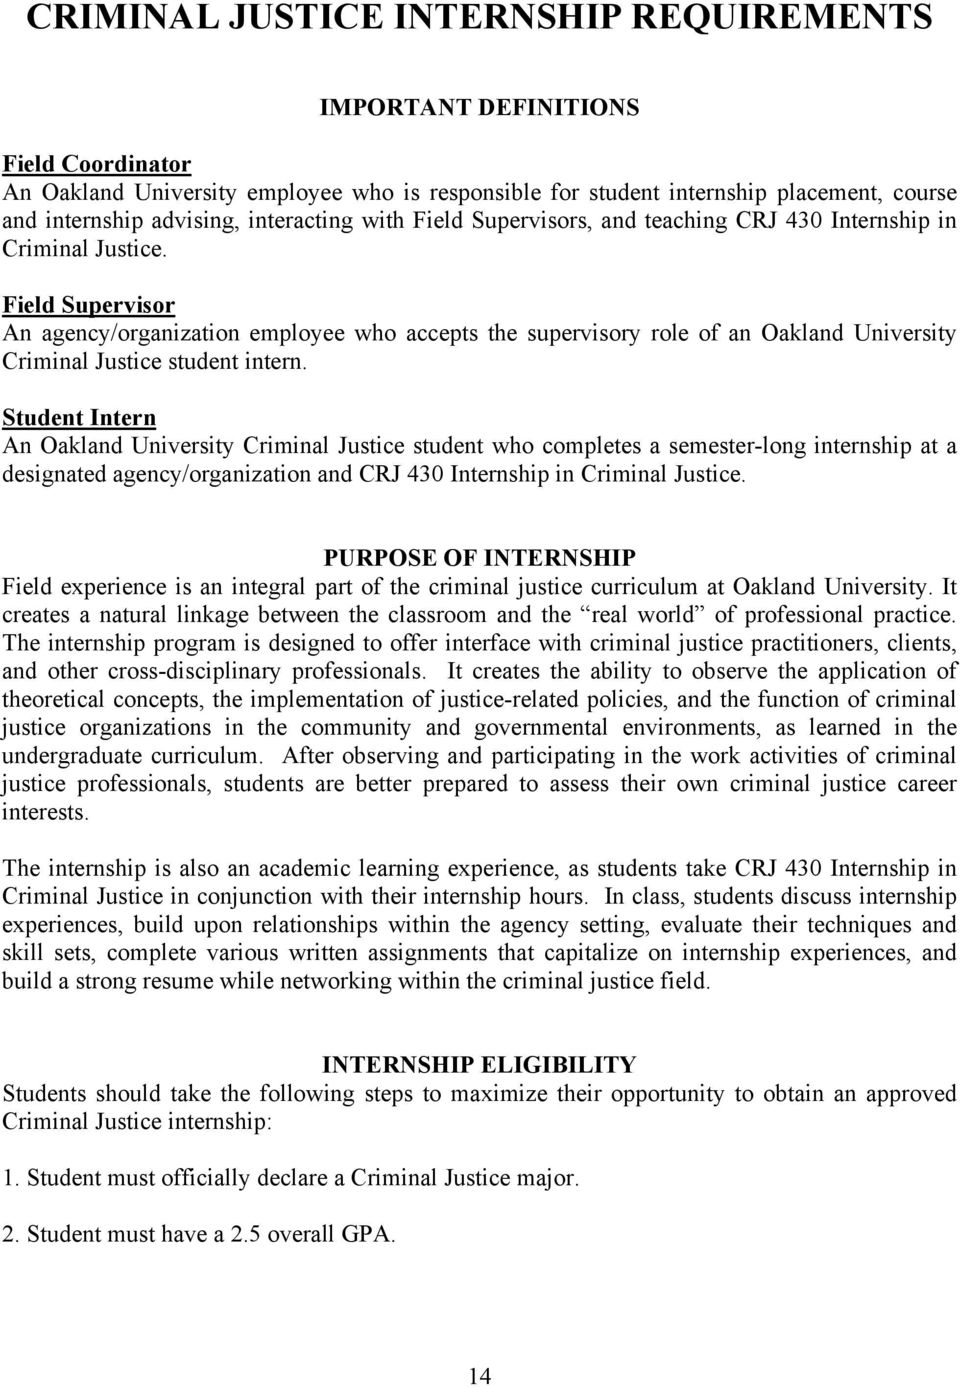 Field Supervisor An agency/organization employee who accepts the supervisory role of an Oakland University Criminal Justice student intern.